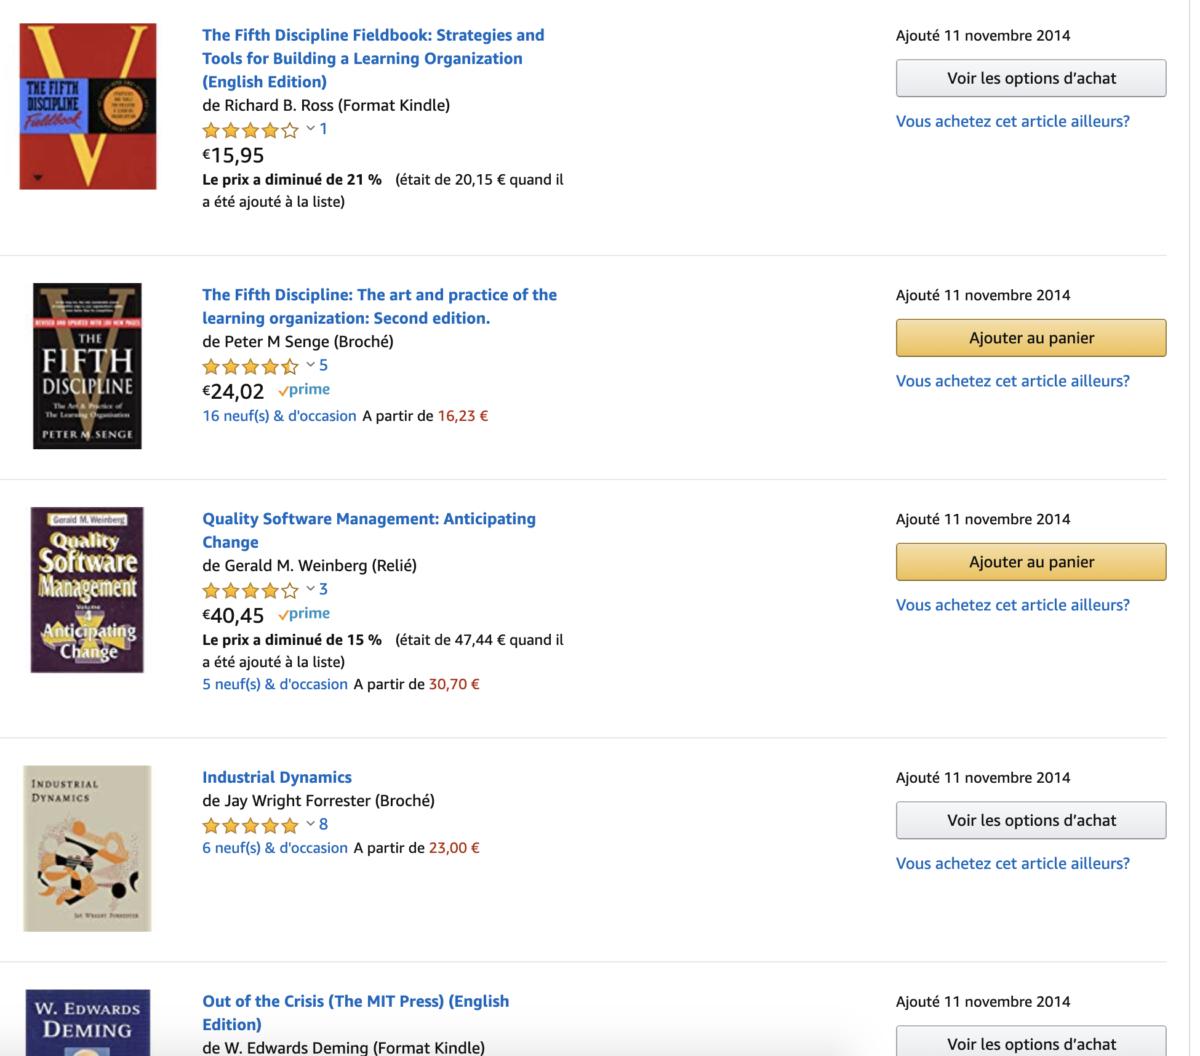 Amazon list of Agile and Lean books